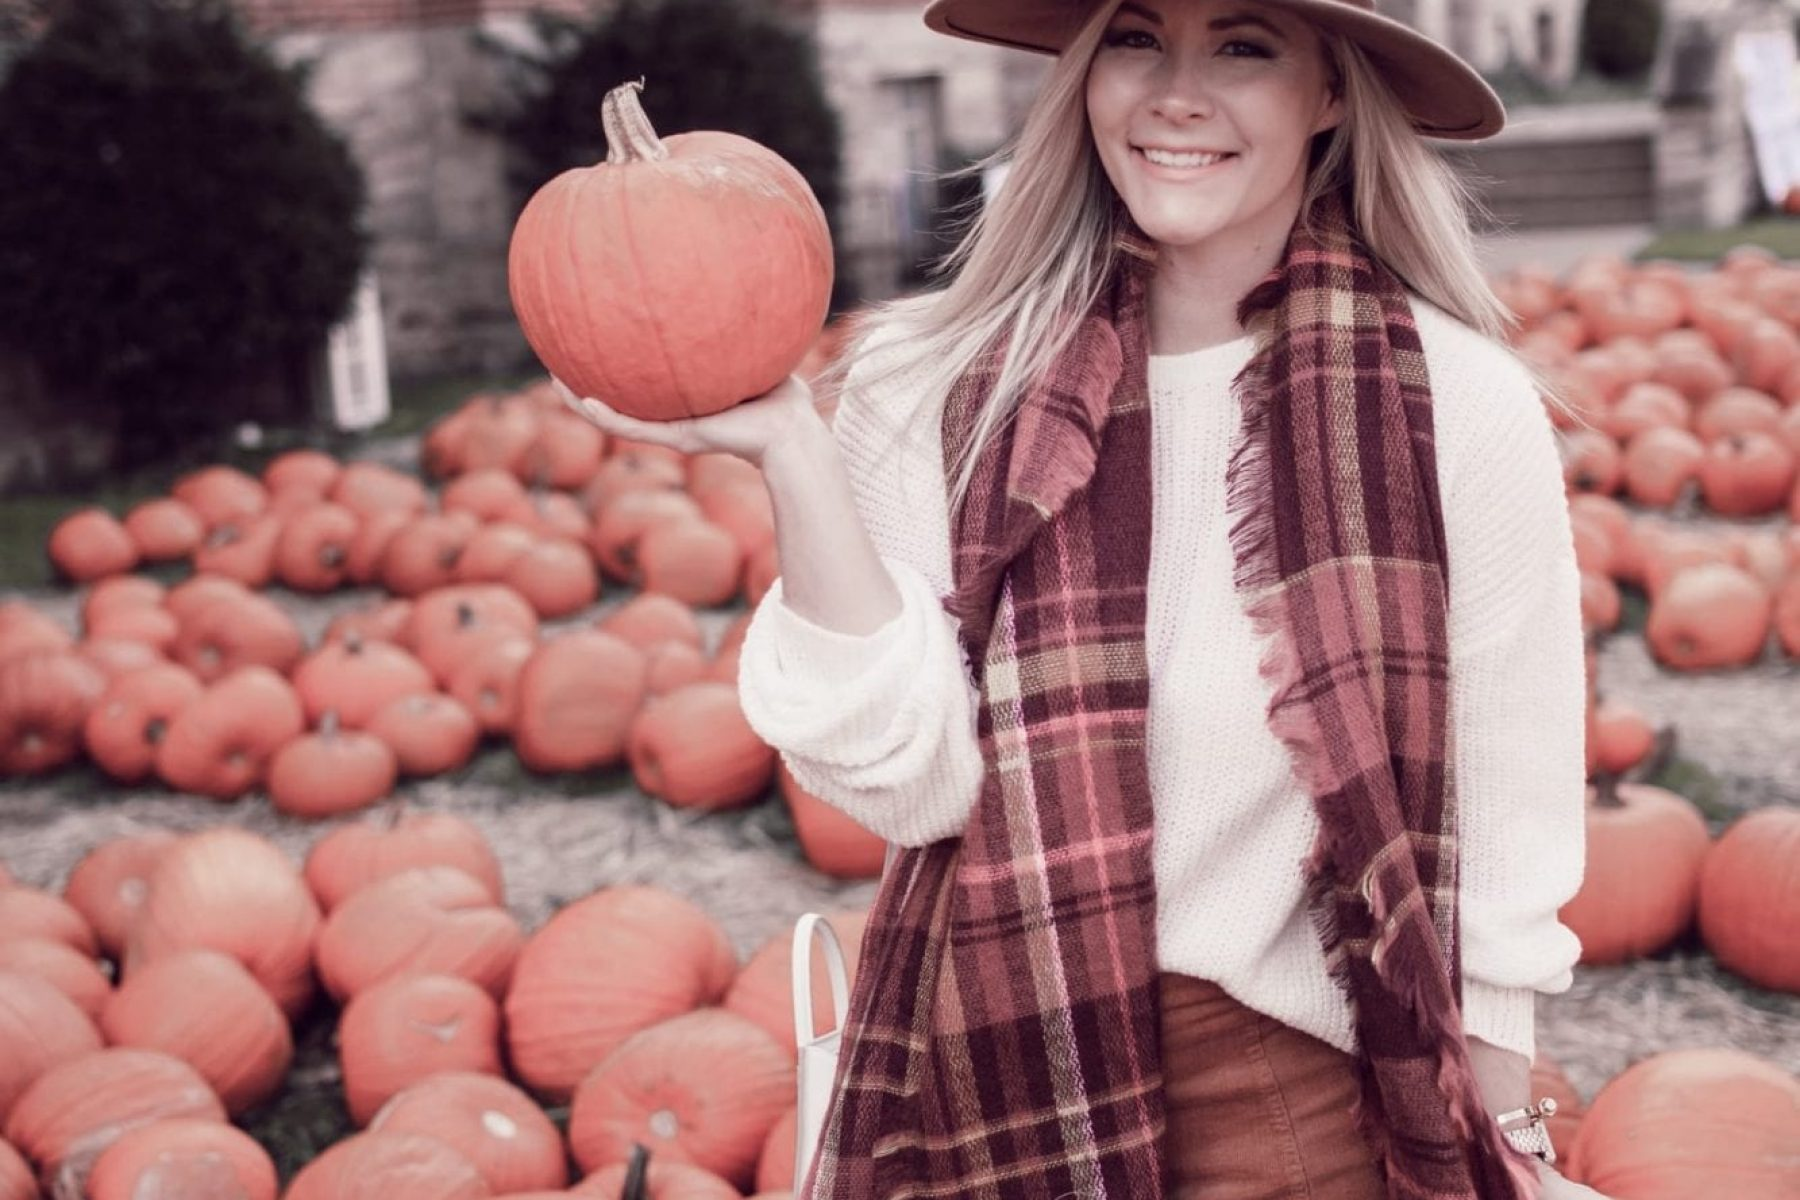 Basic Girl- Pumpkin- Afternoon Espresso- Blogger- Fall Outfit Idea- Thanksgiving Outfit Idea (81 of 7)